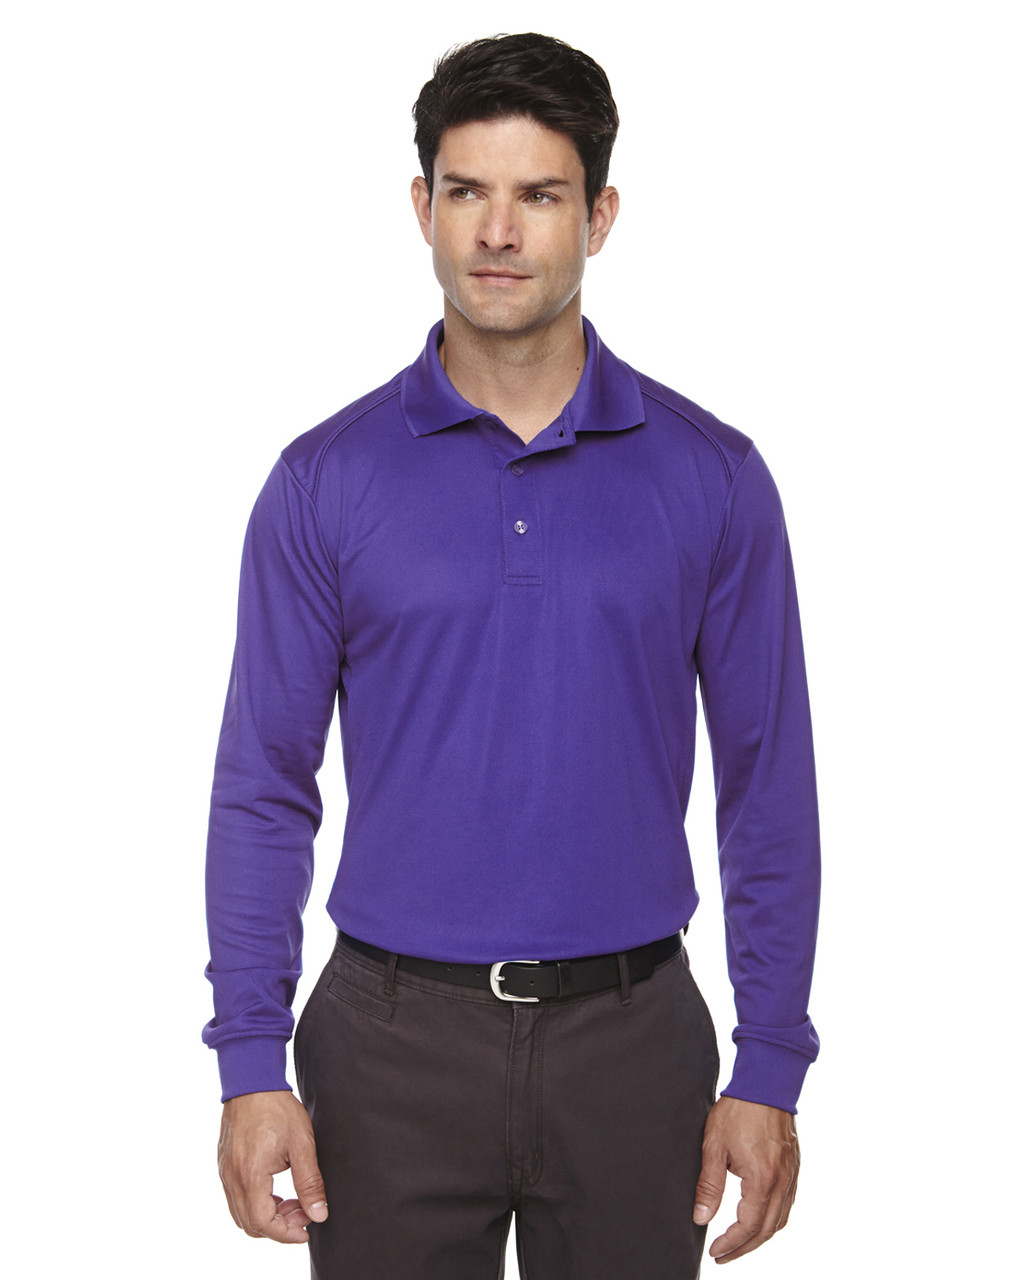 Campus Purple 85111 Ash City - Extreme Eperformance Men's Long-Sleeve Polo Shirt